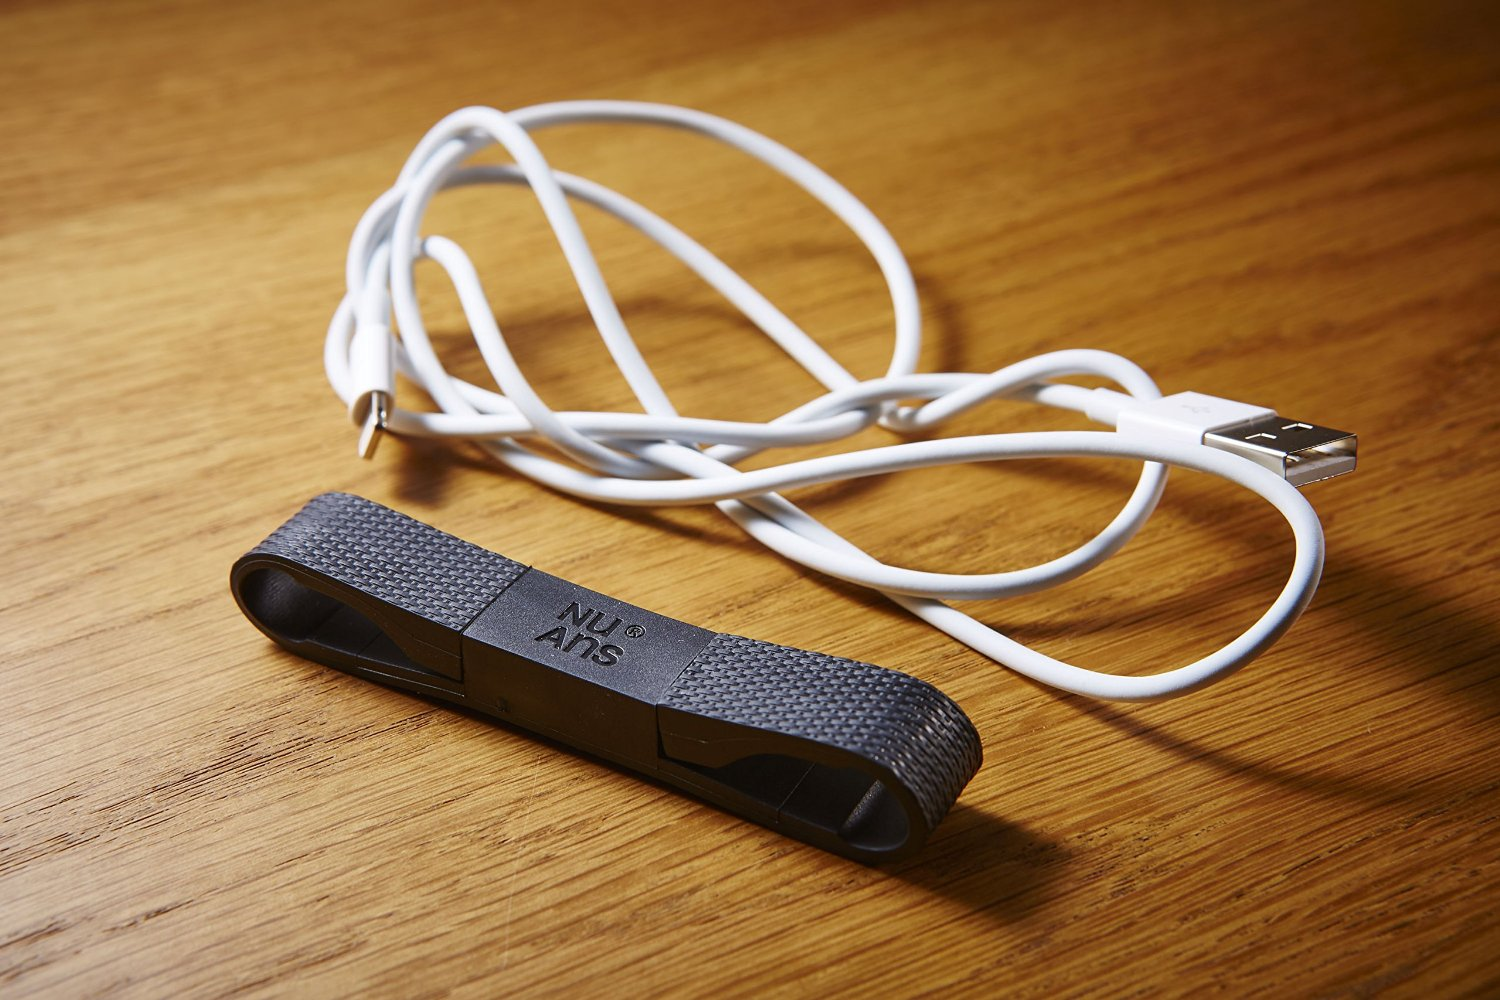 BANDWIRE Lightning Cable Keychain by NuAns